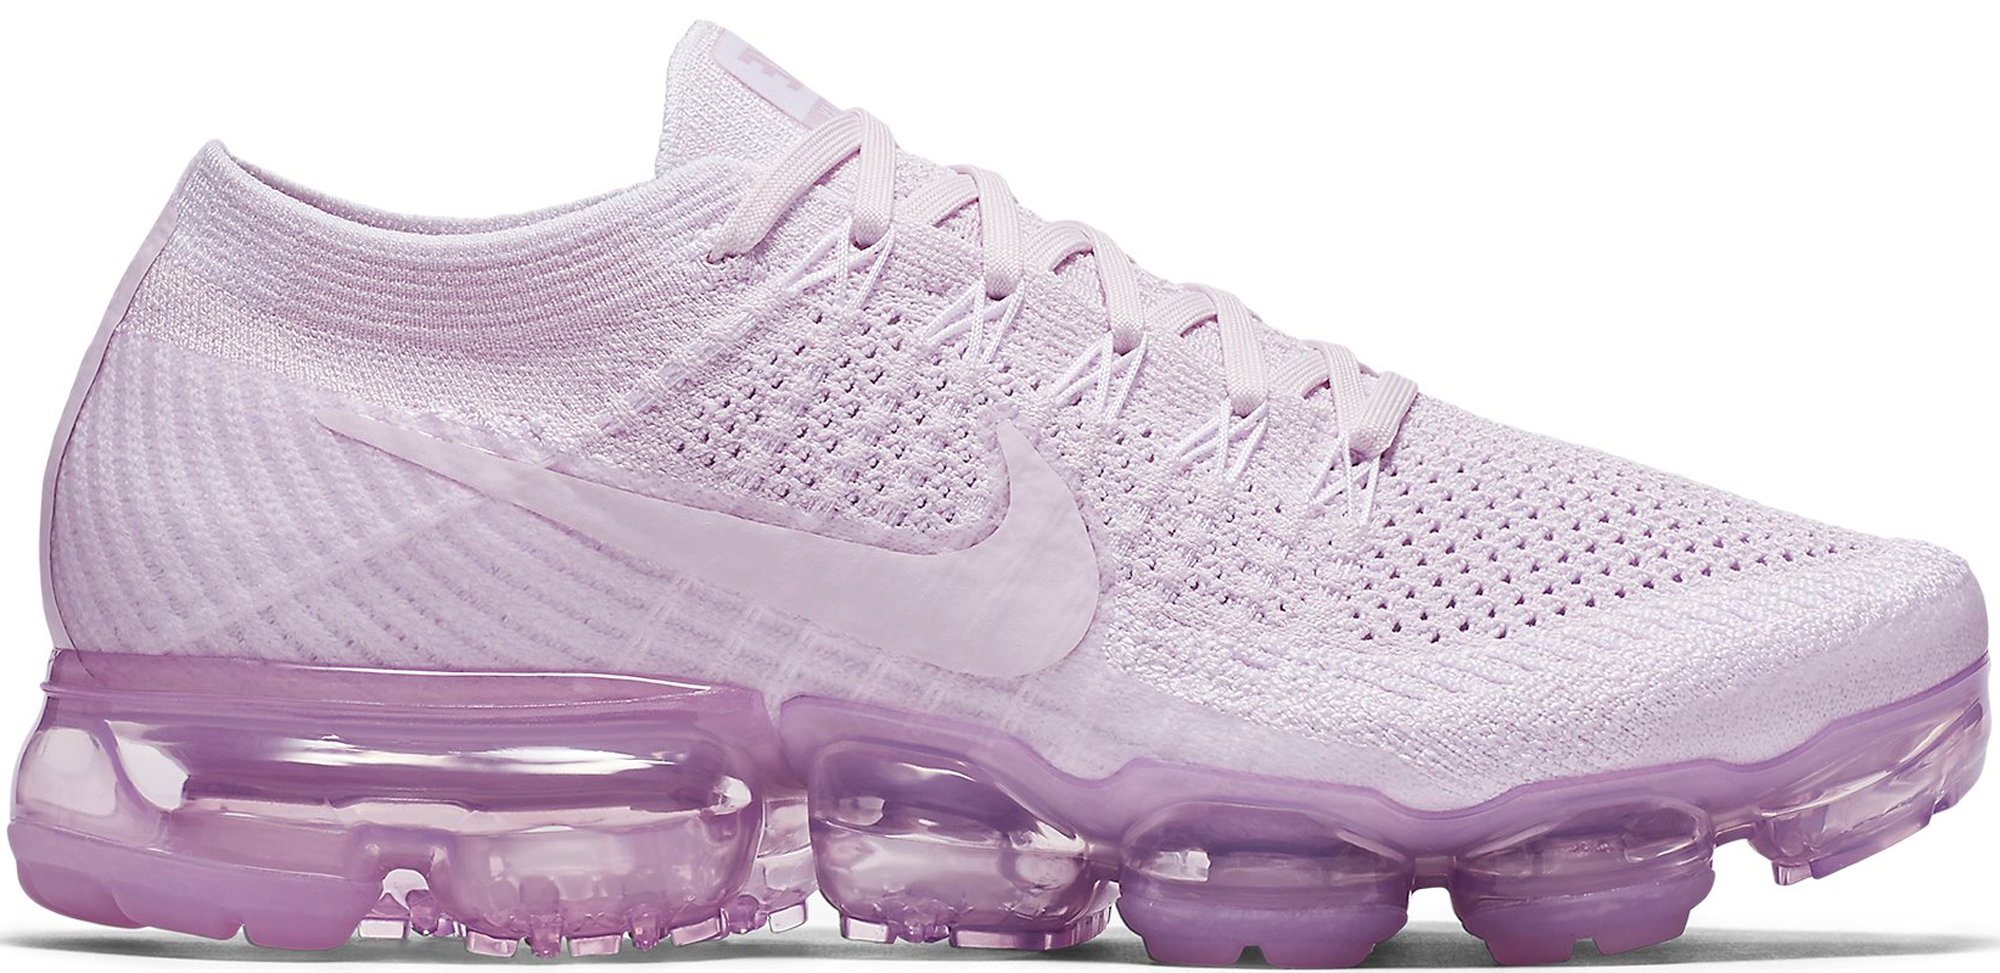 0c5a9e0e17e5b4 Women s Nike Air VaporMax Light Violet Flyknit Day To Night